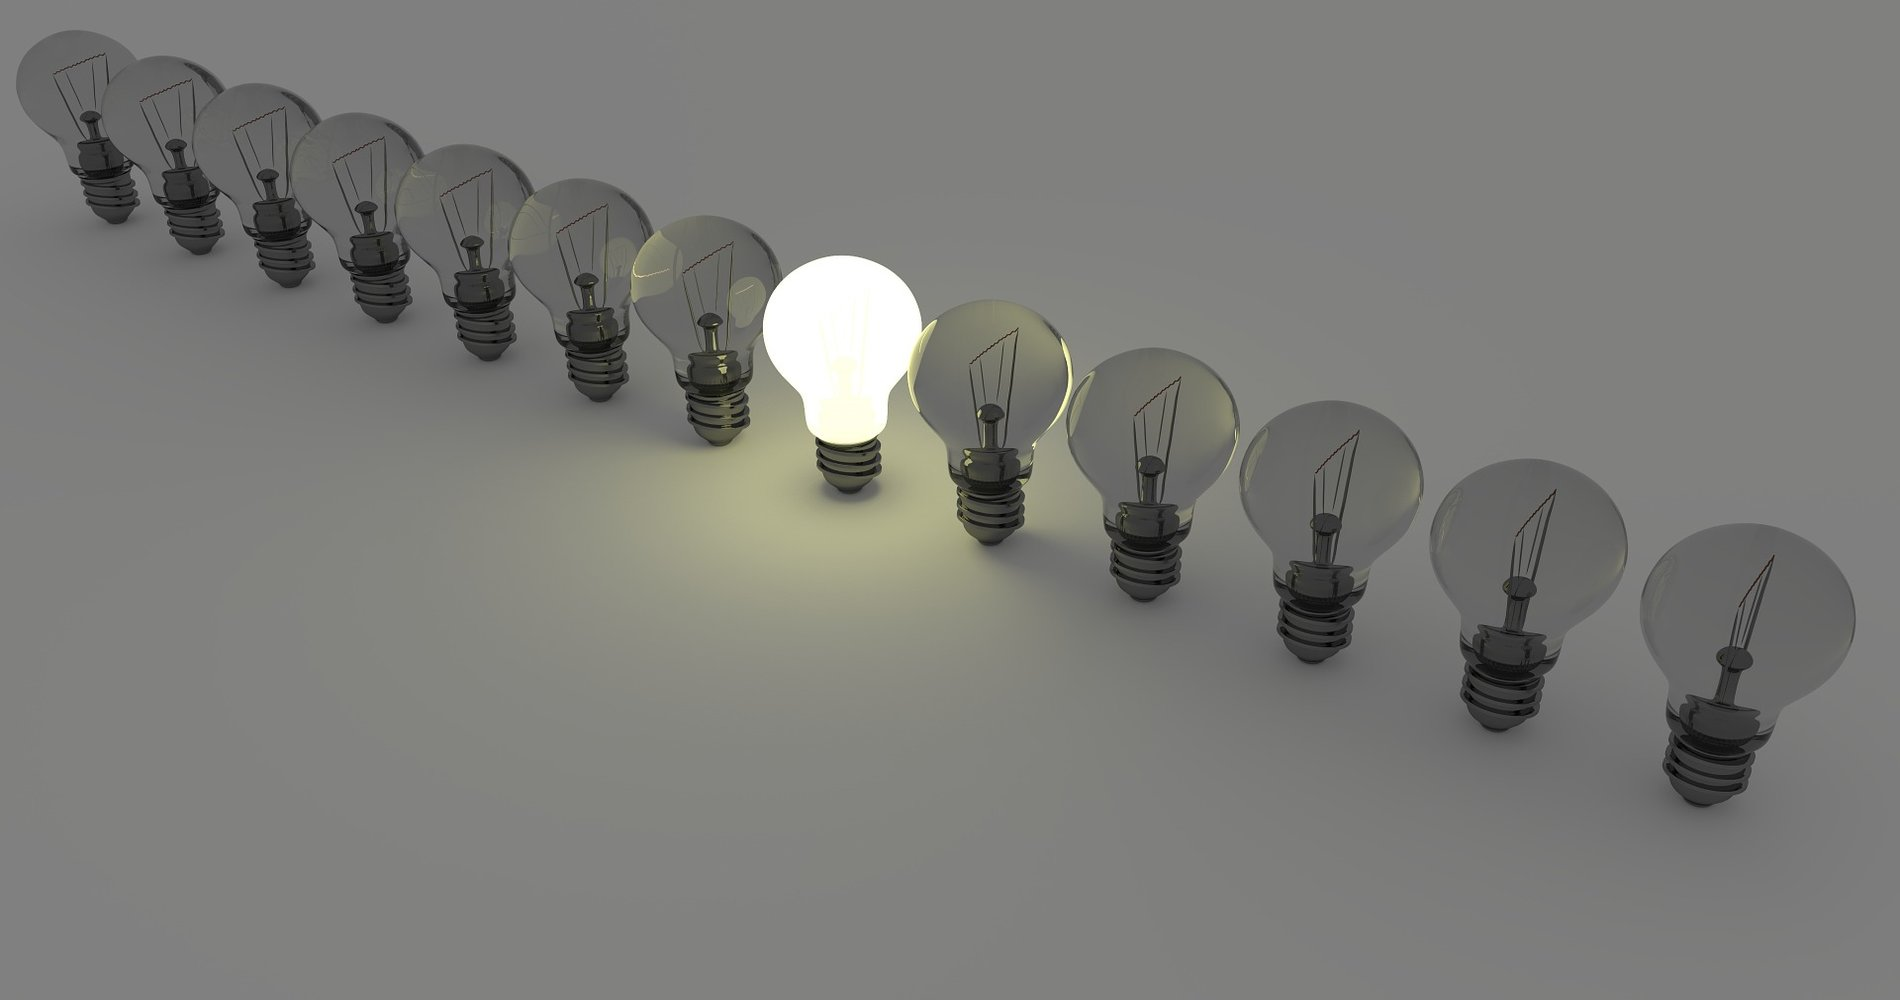 rsz_light-bulbs-1125016_1920